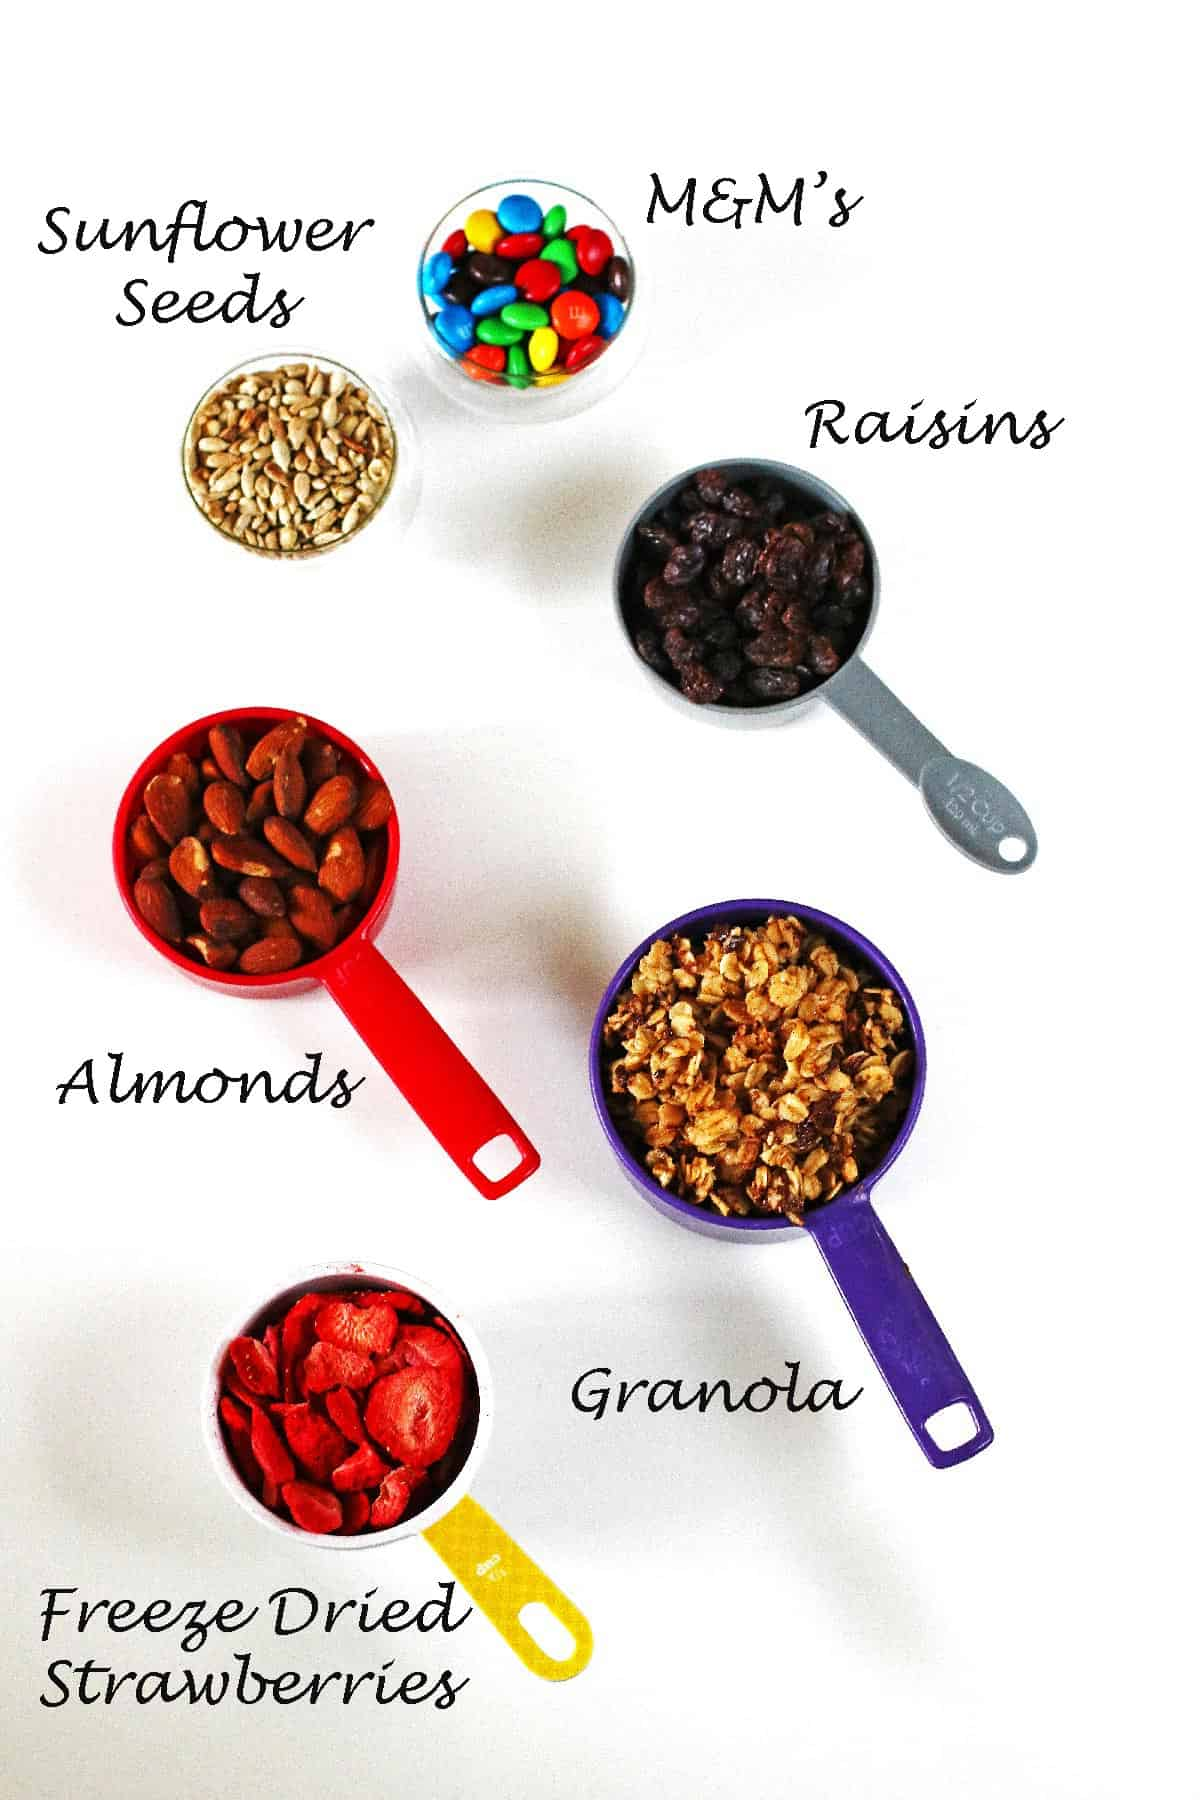 Ingredients in measuring cups for the trail mix